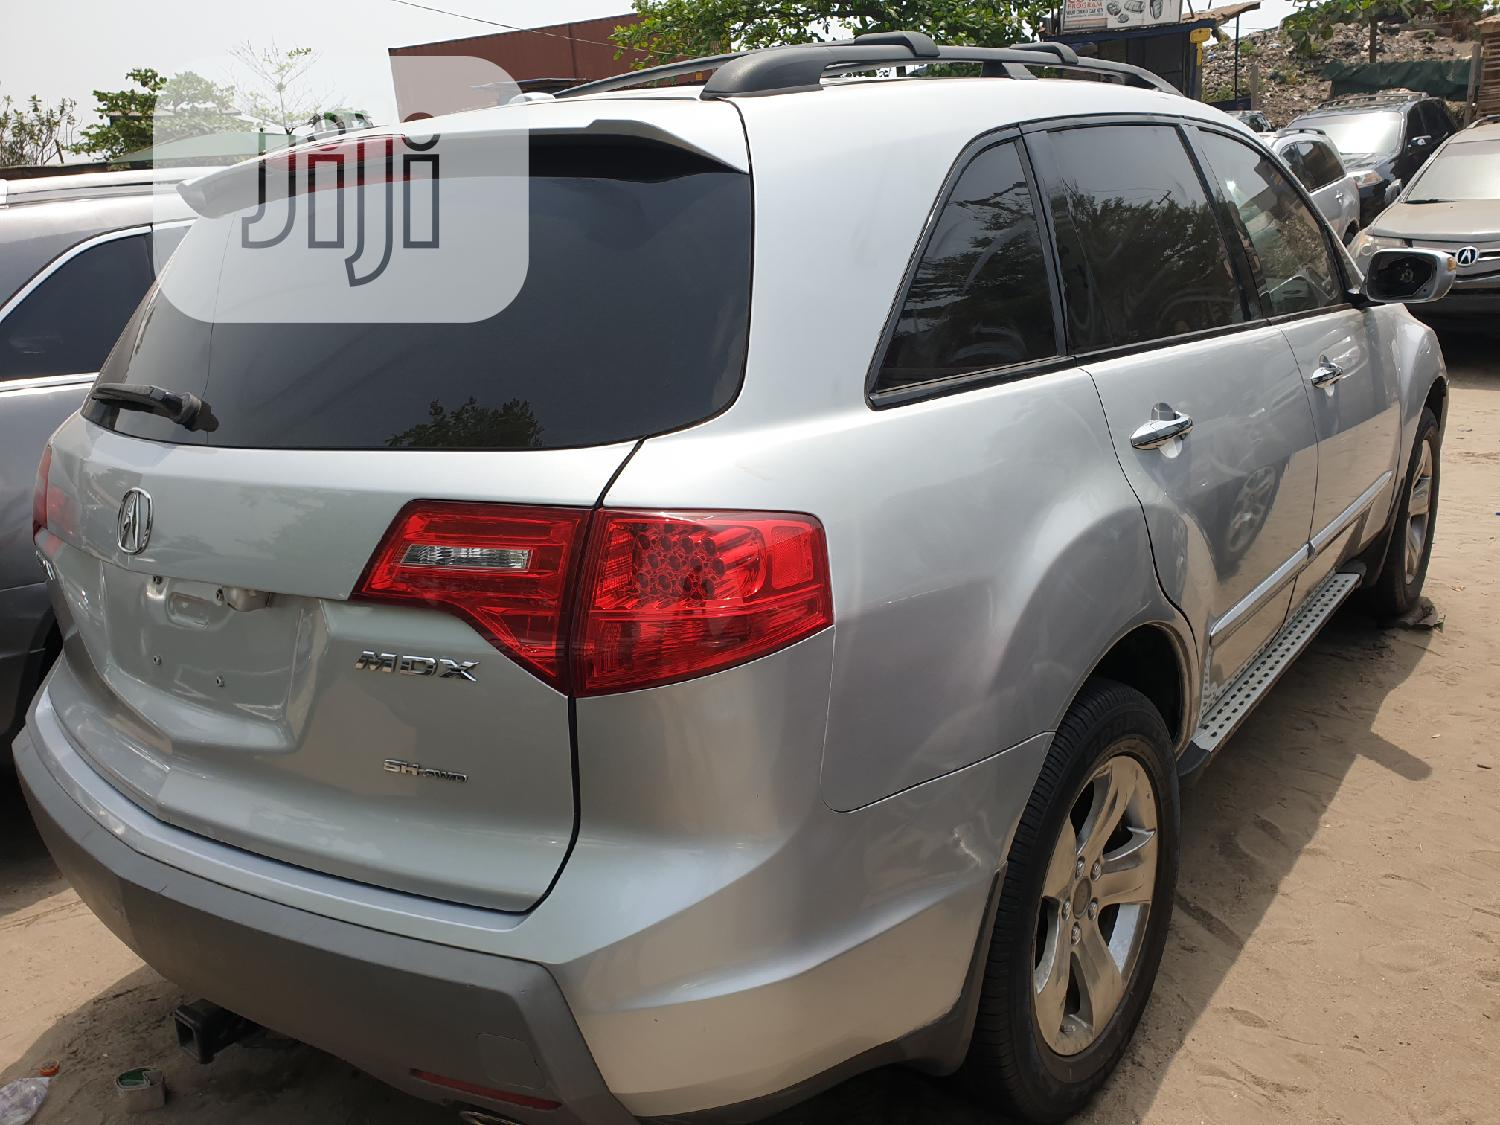 Acura MDX 2008 SUV 4dr AWD (3.7 6cyl 5A) Silver | Cars for sale in Apapa, Lagos State, Nigeria